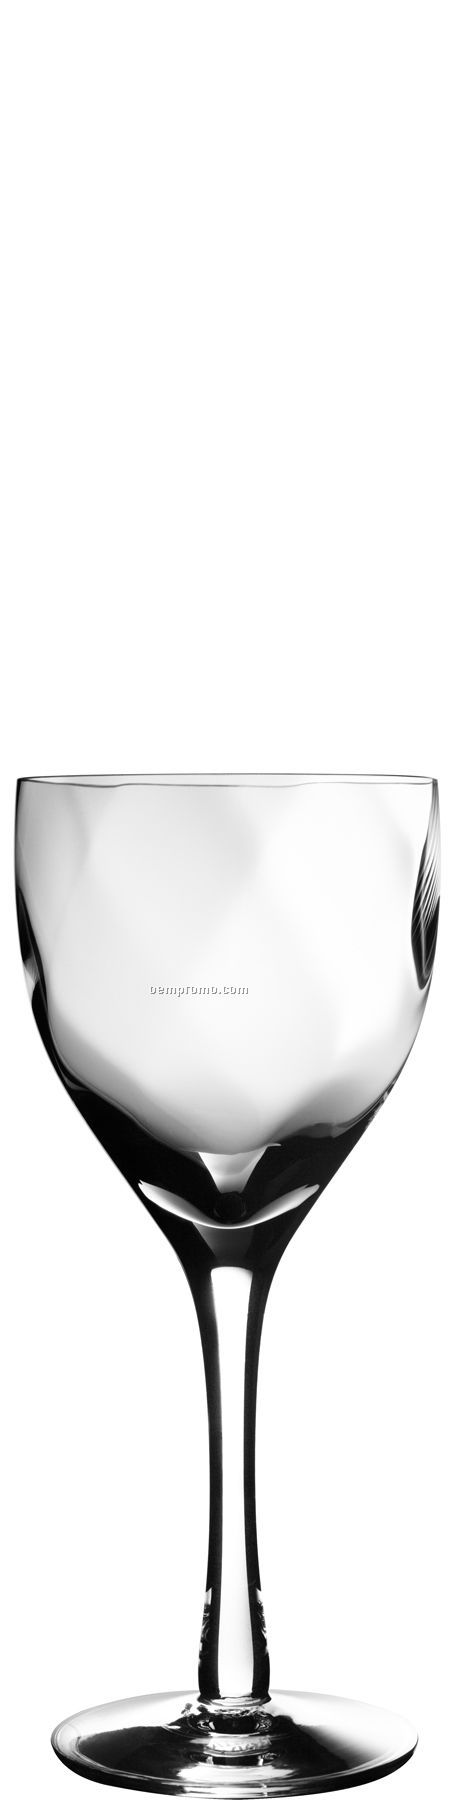 Chateau Crystal Wine Glass Stemware By Bertil Vallien